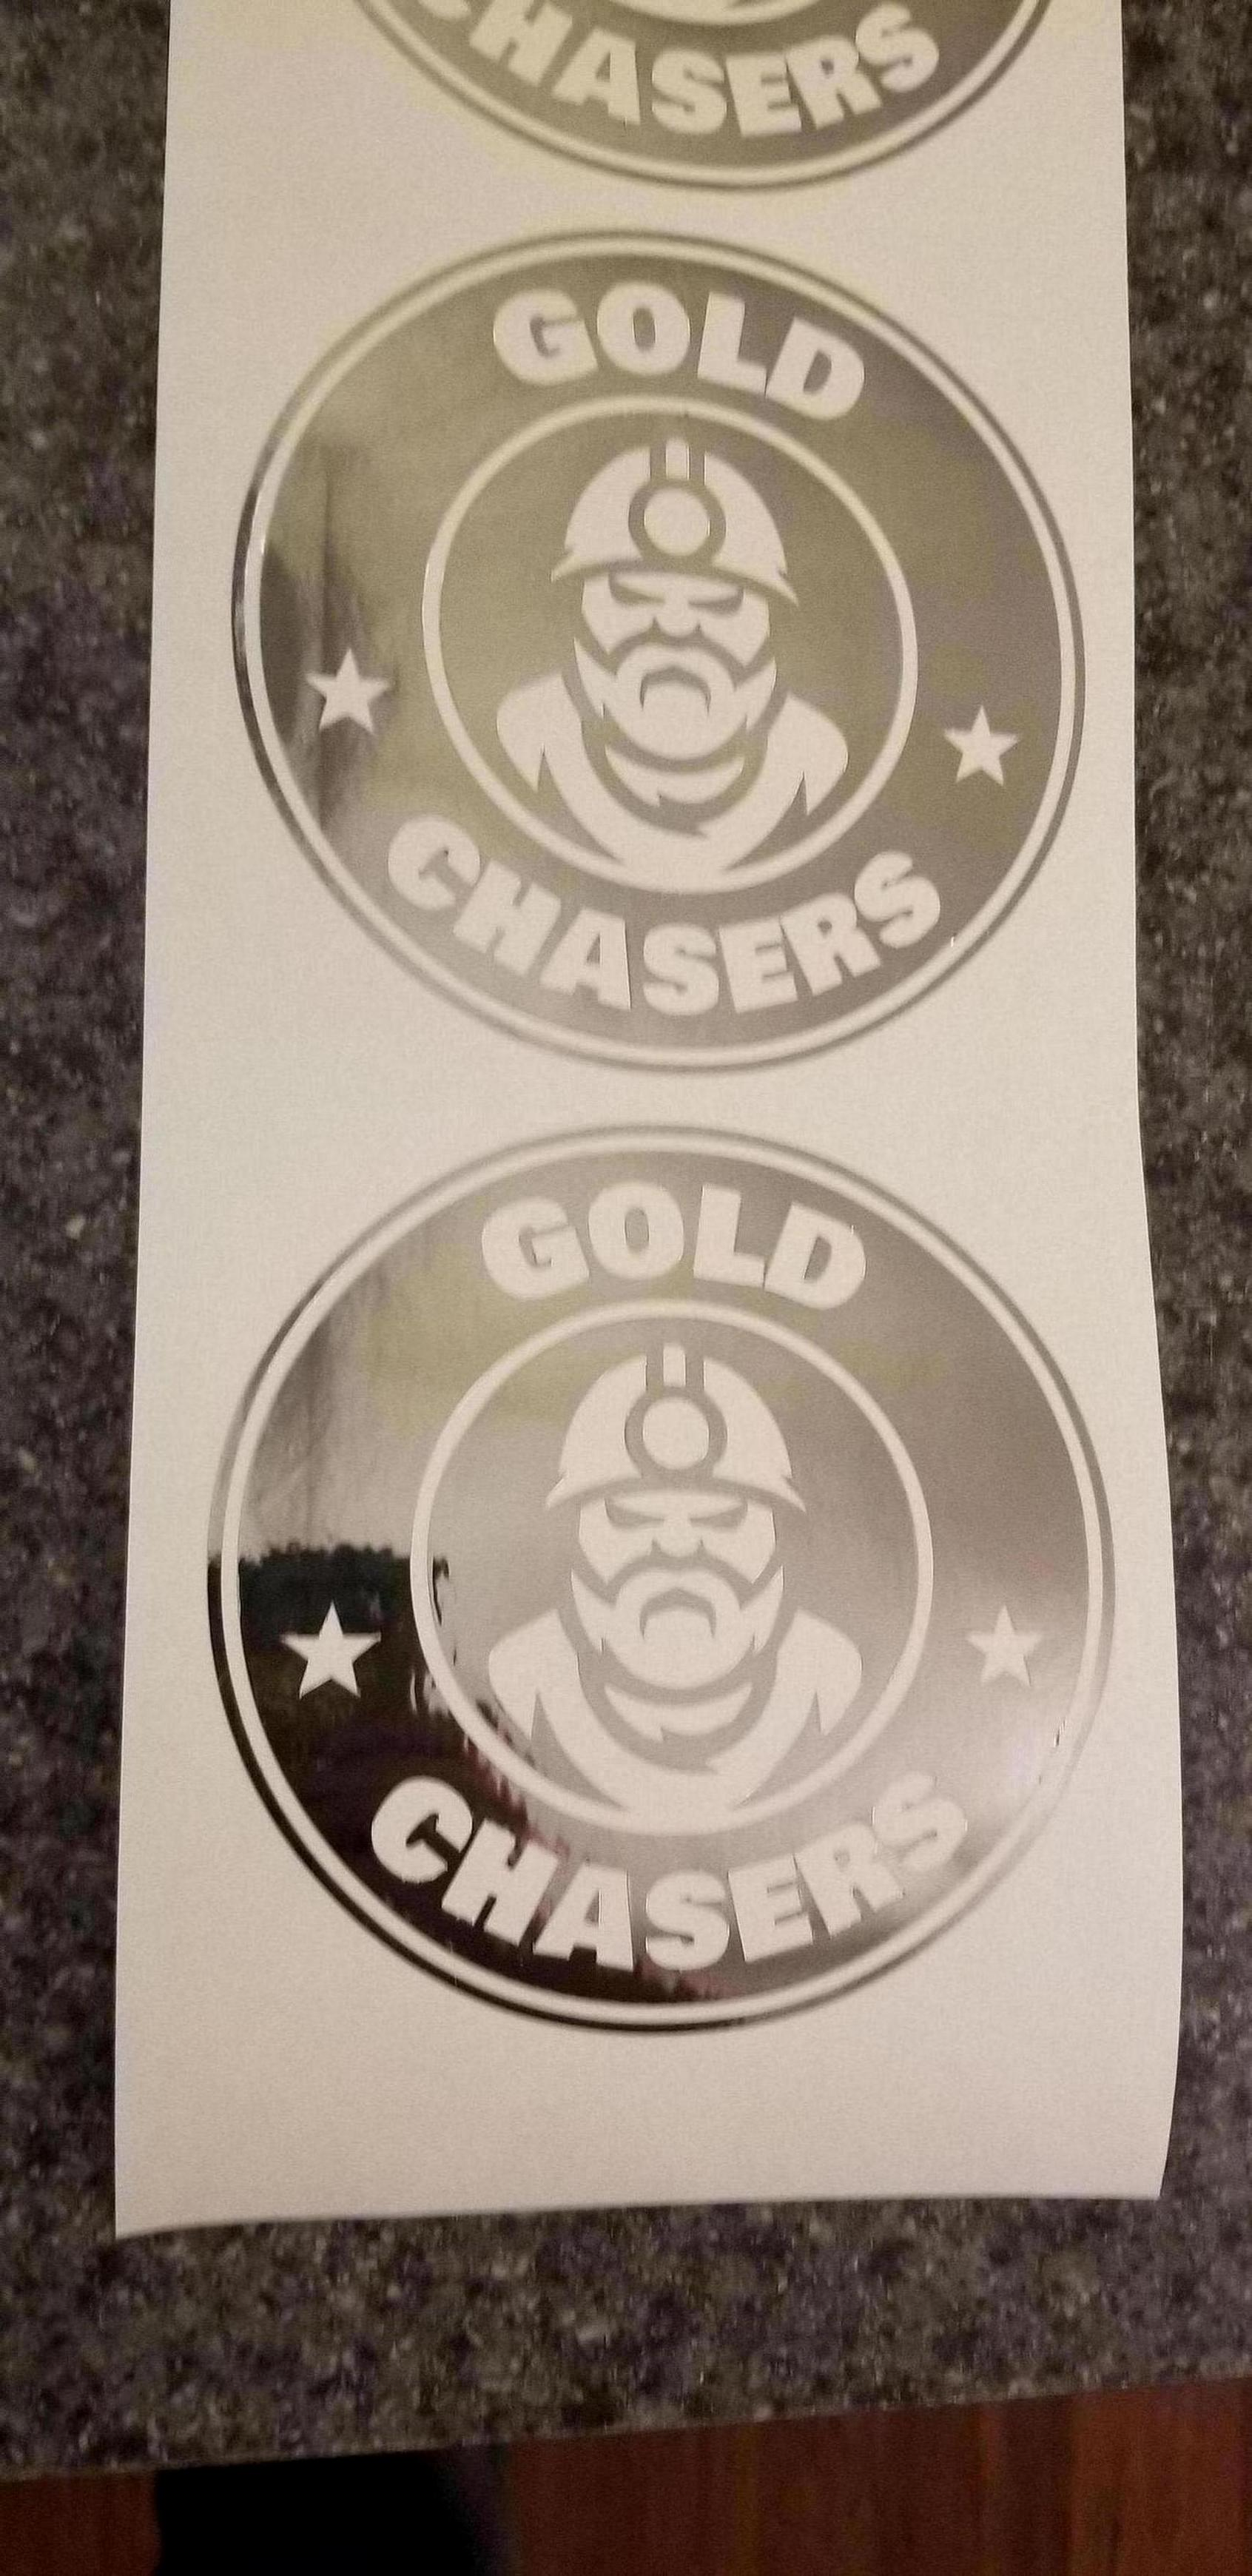 Gold Chasers Logo Sticker Starbucks